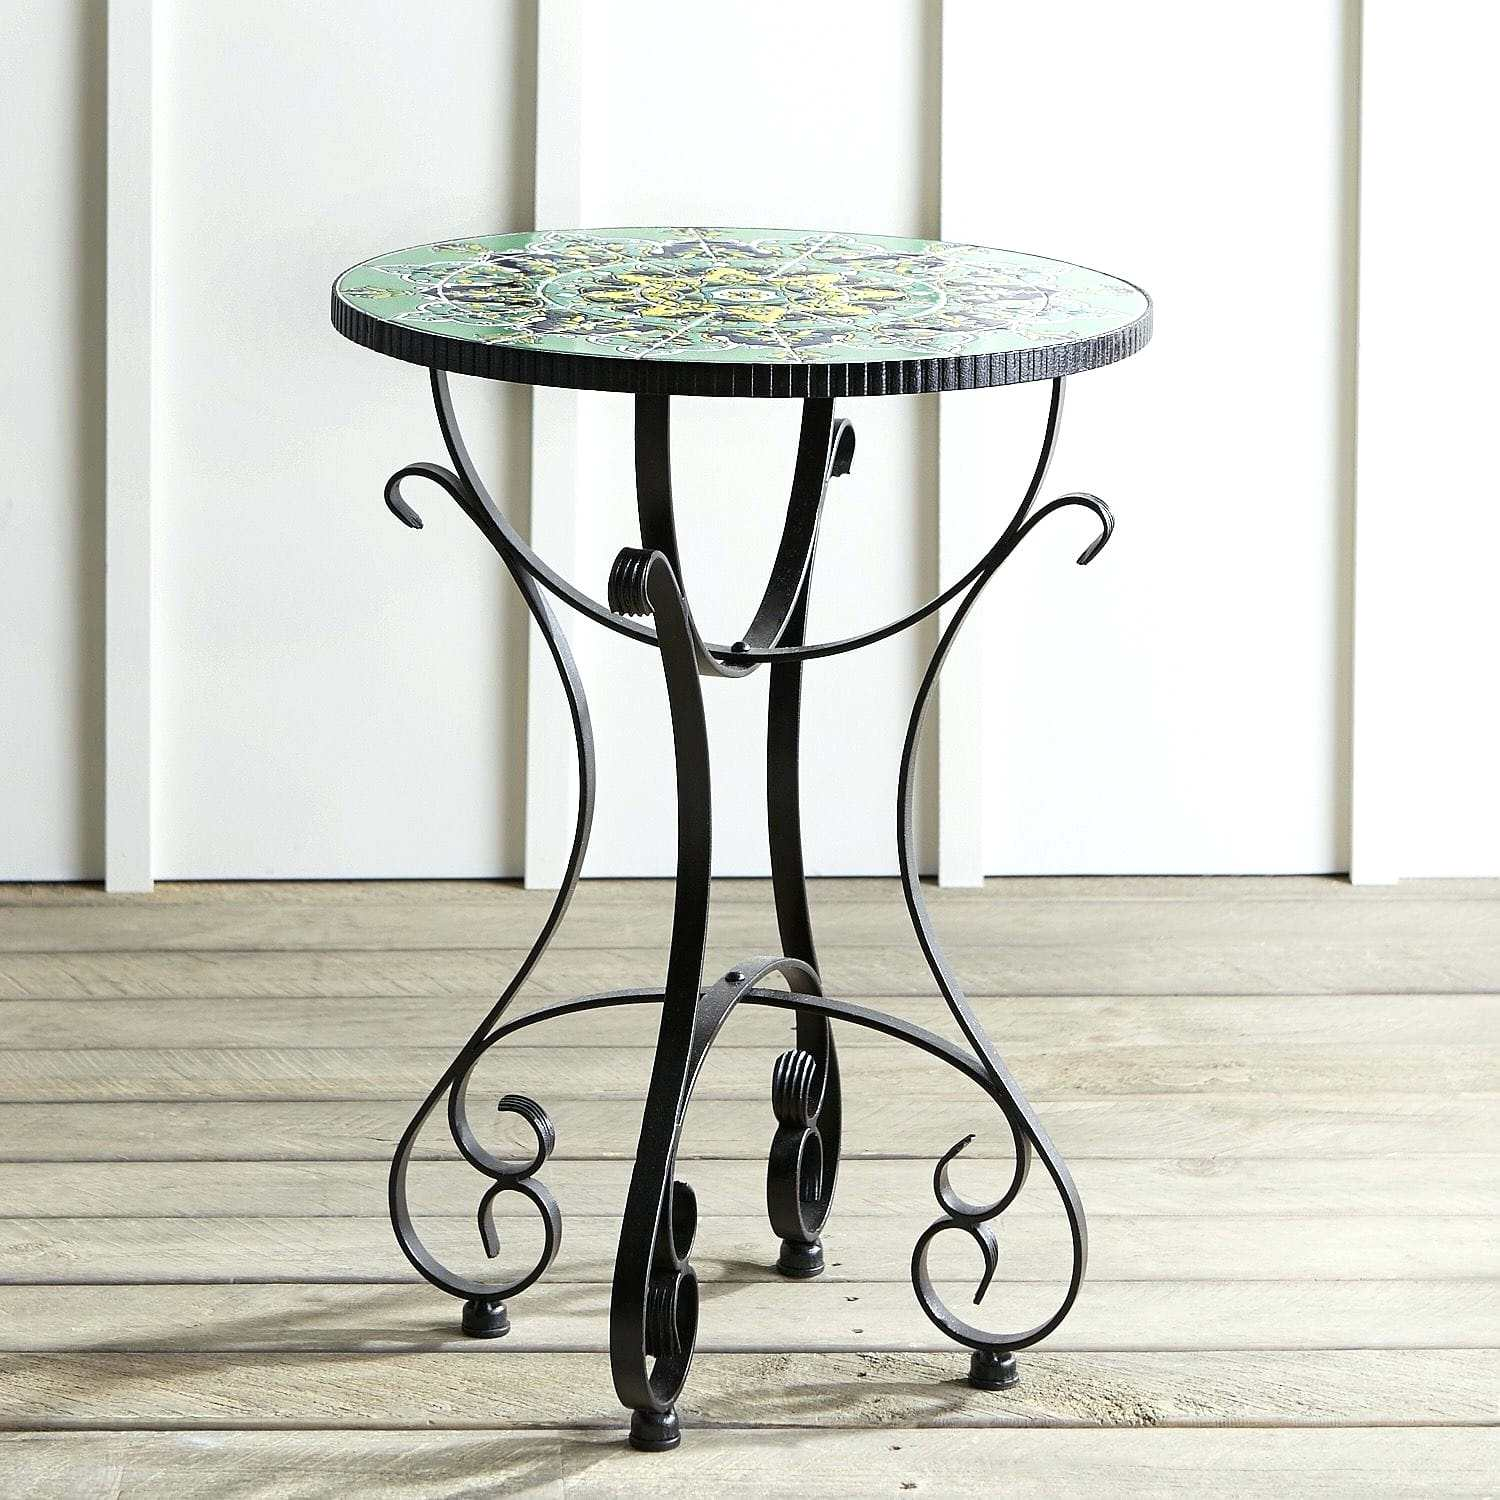 teal accent table small round target fretwork glass patio side trestle dining ashley furniture reviews sitting room tables matching lamps hall with drawers west elm rabbit lamp